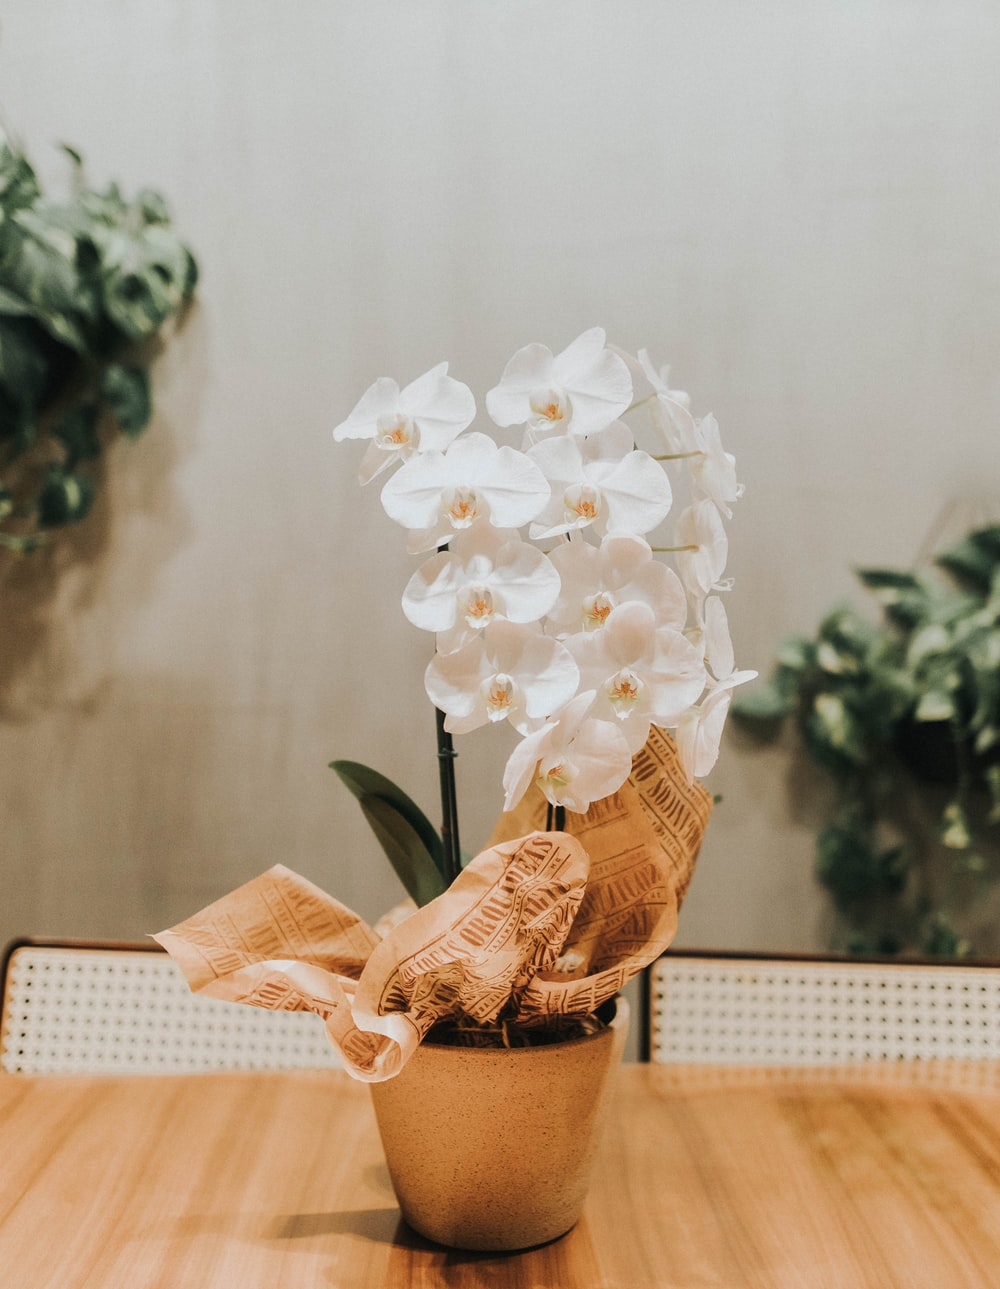 white flower bouquet on brown woven basket